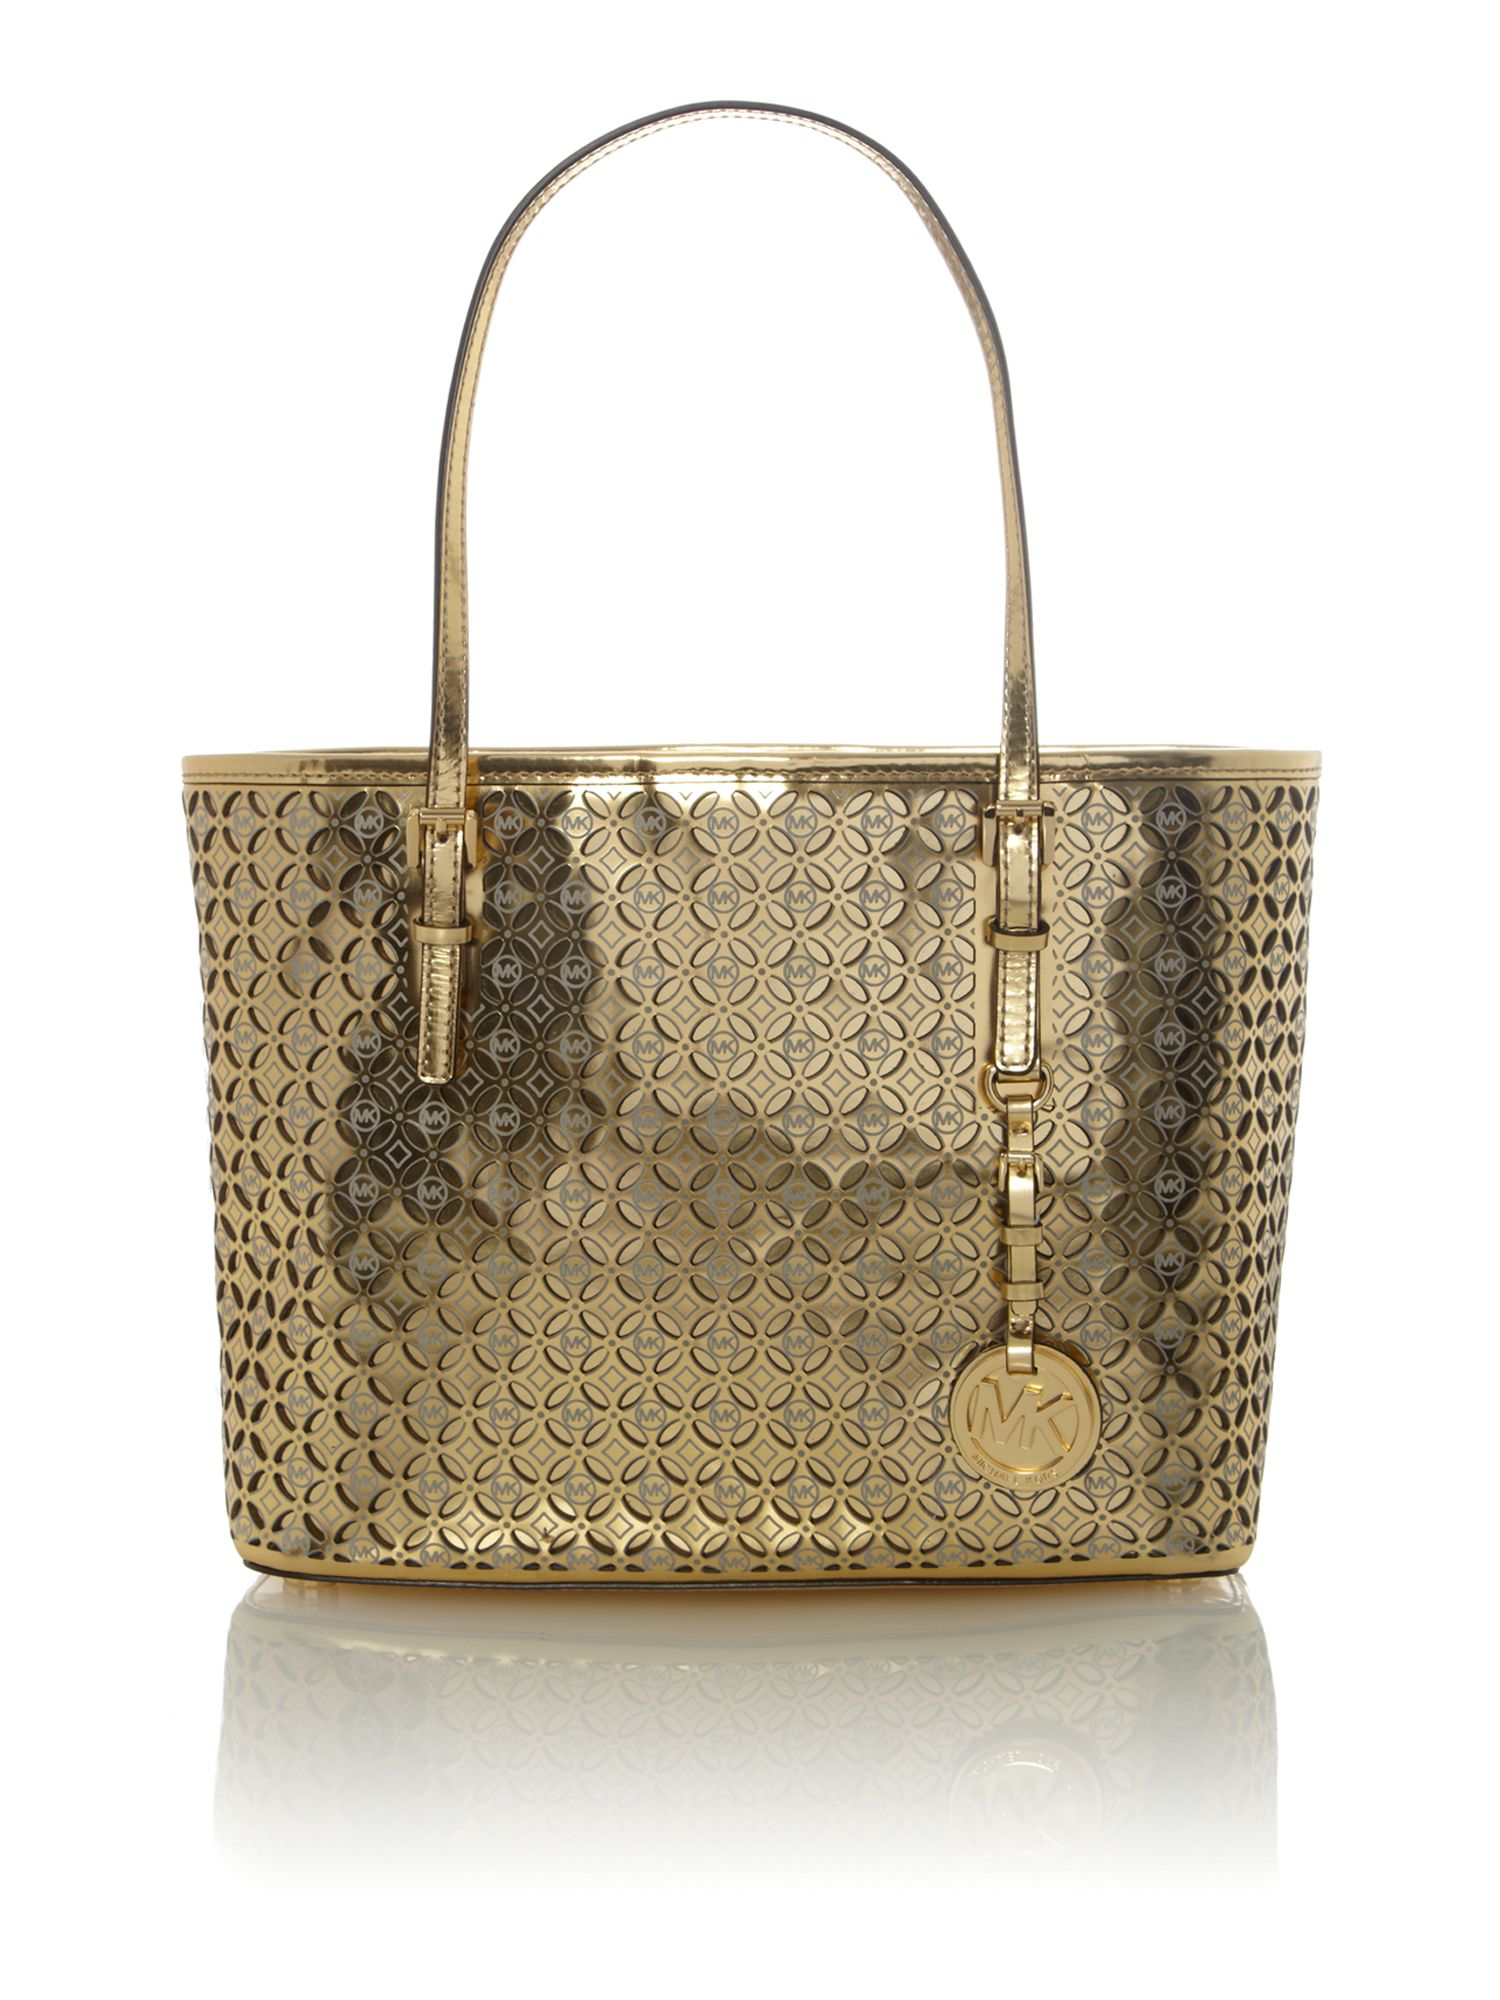 Lyst Michael Kors Flower Perforated Gold Small Tote Bag